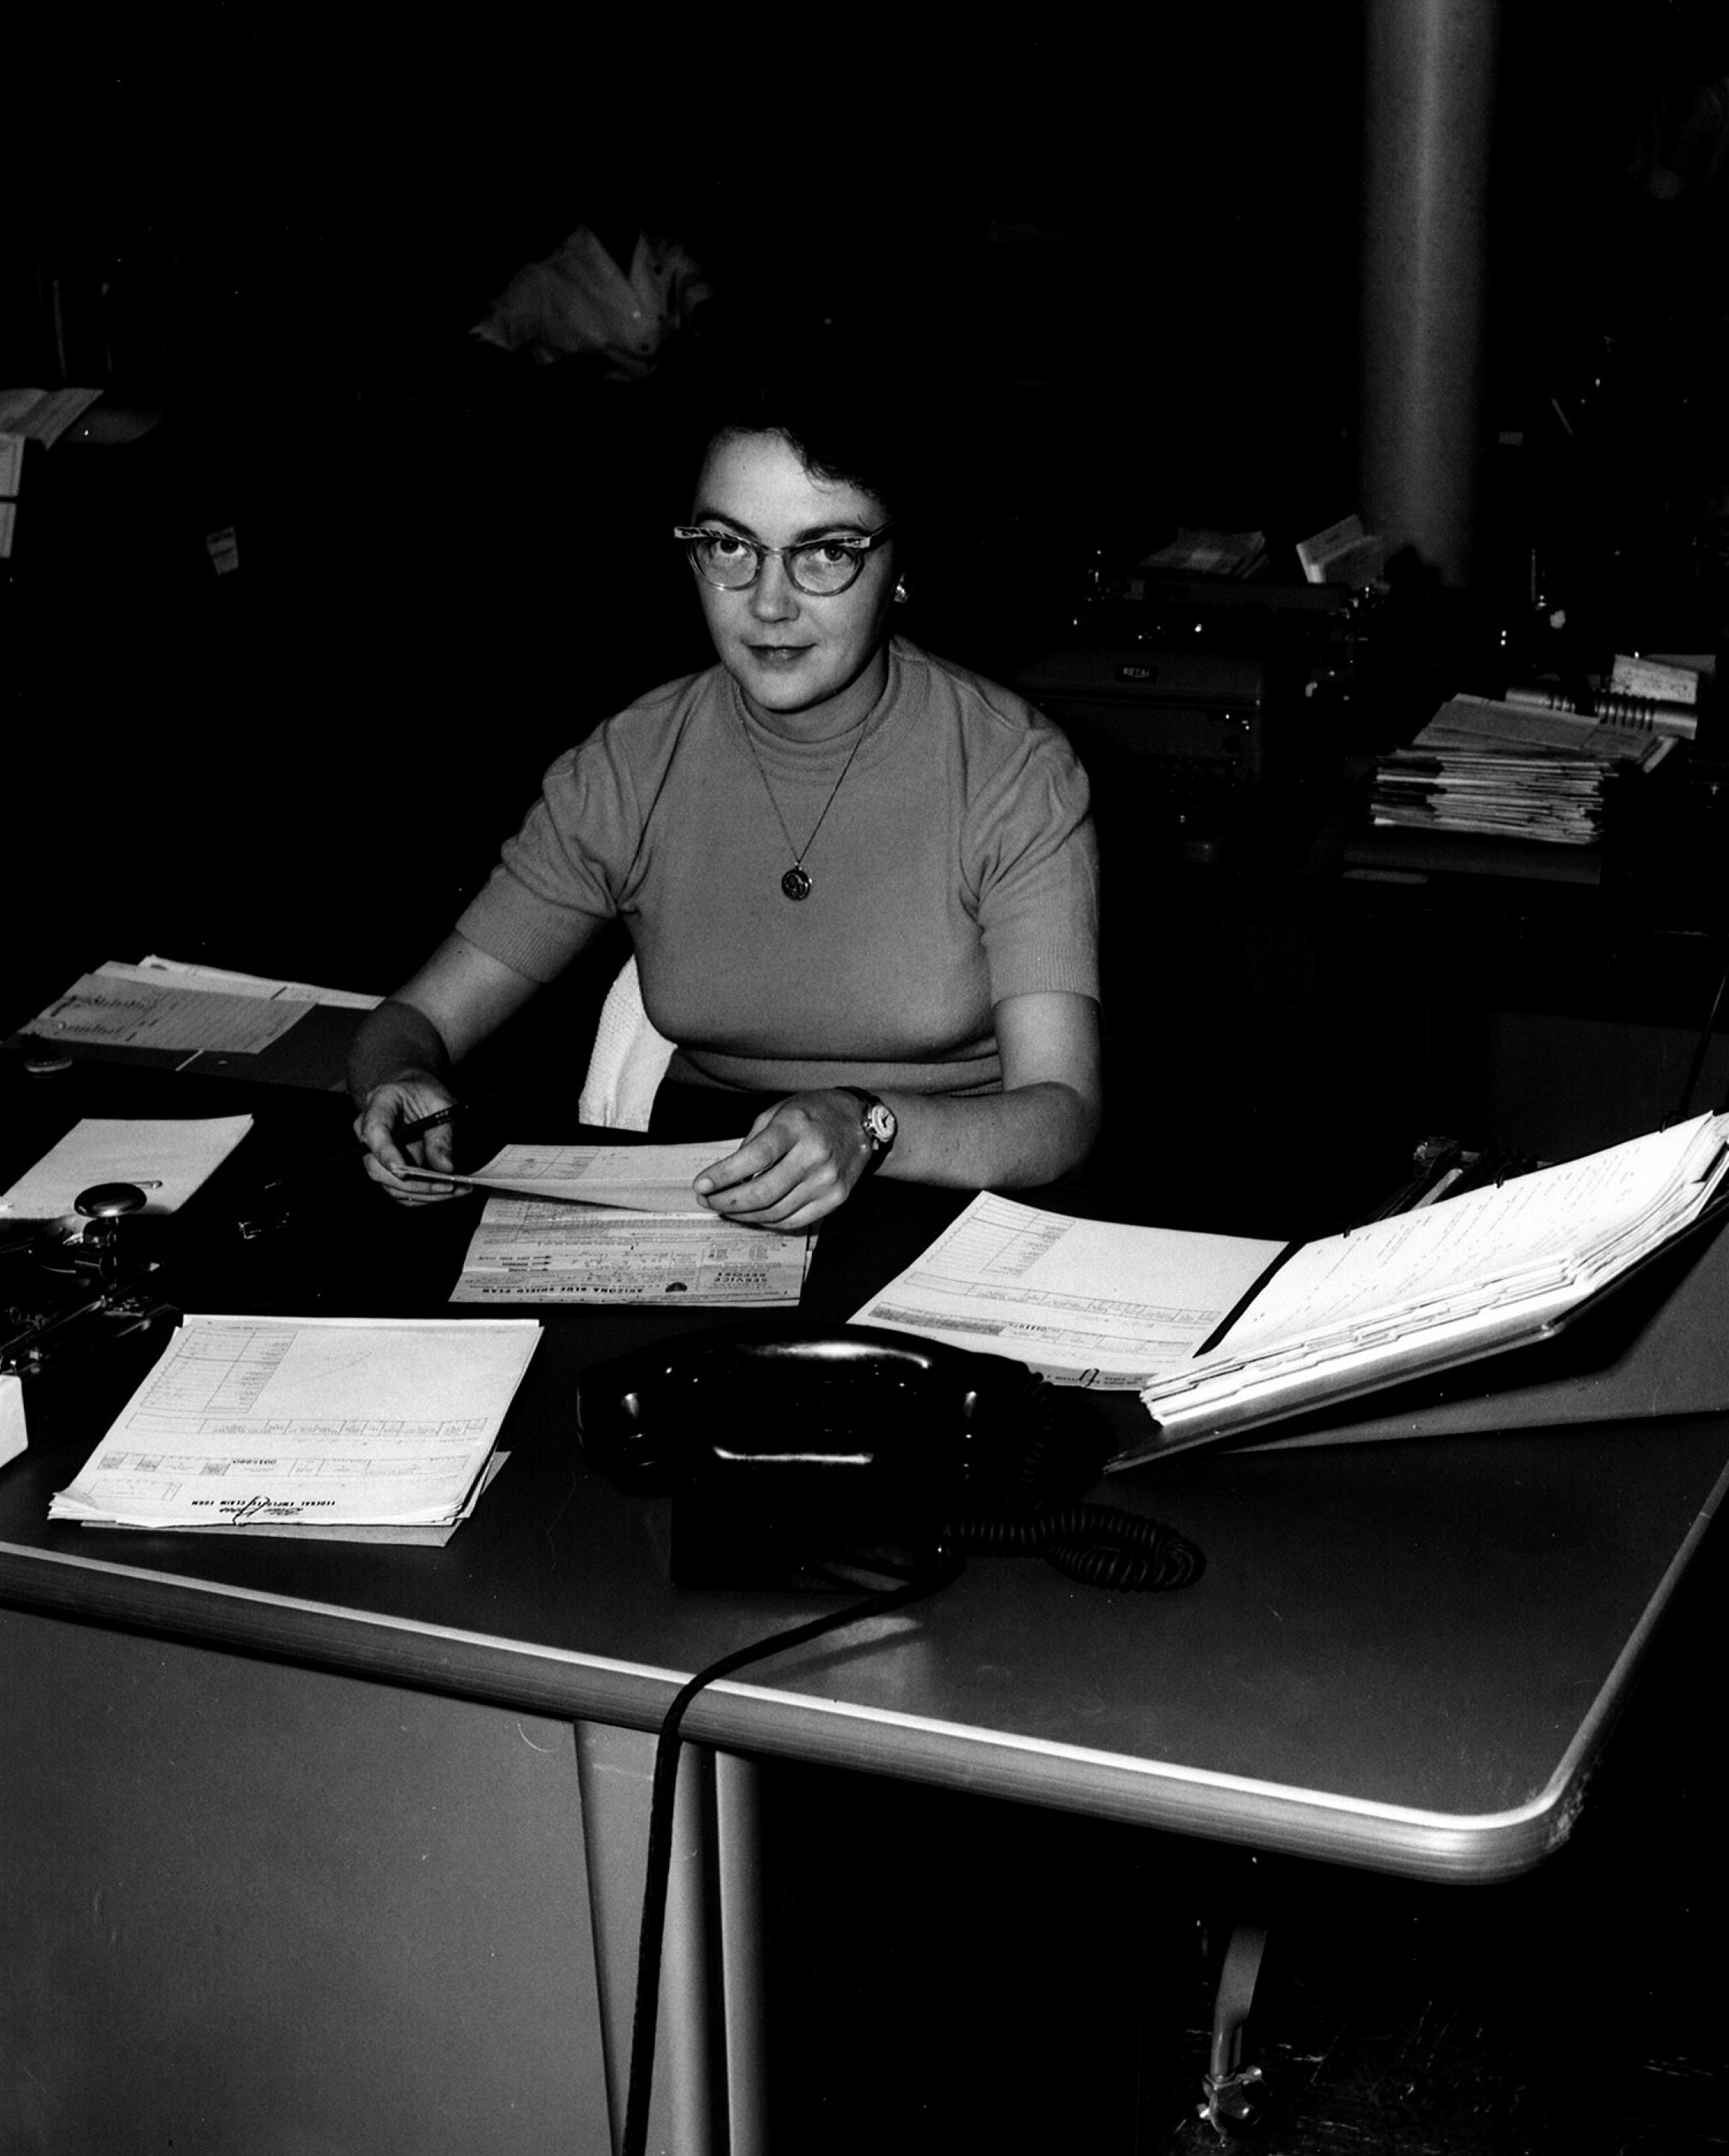 1960s, woman at desk